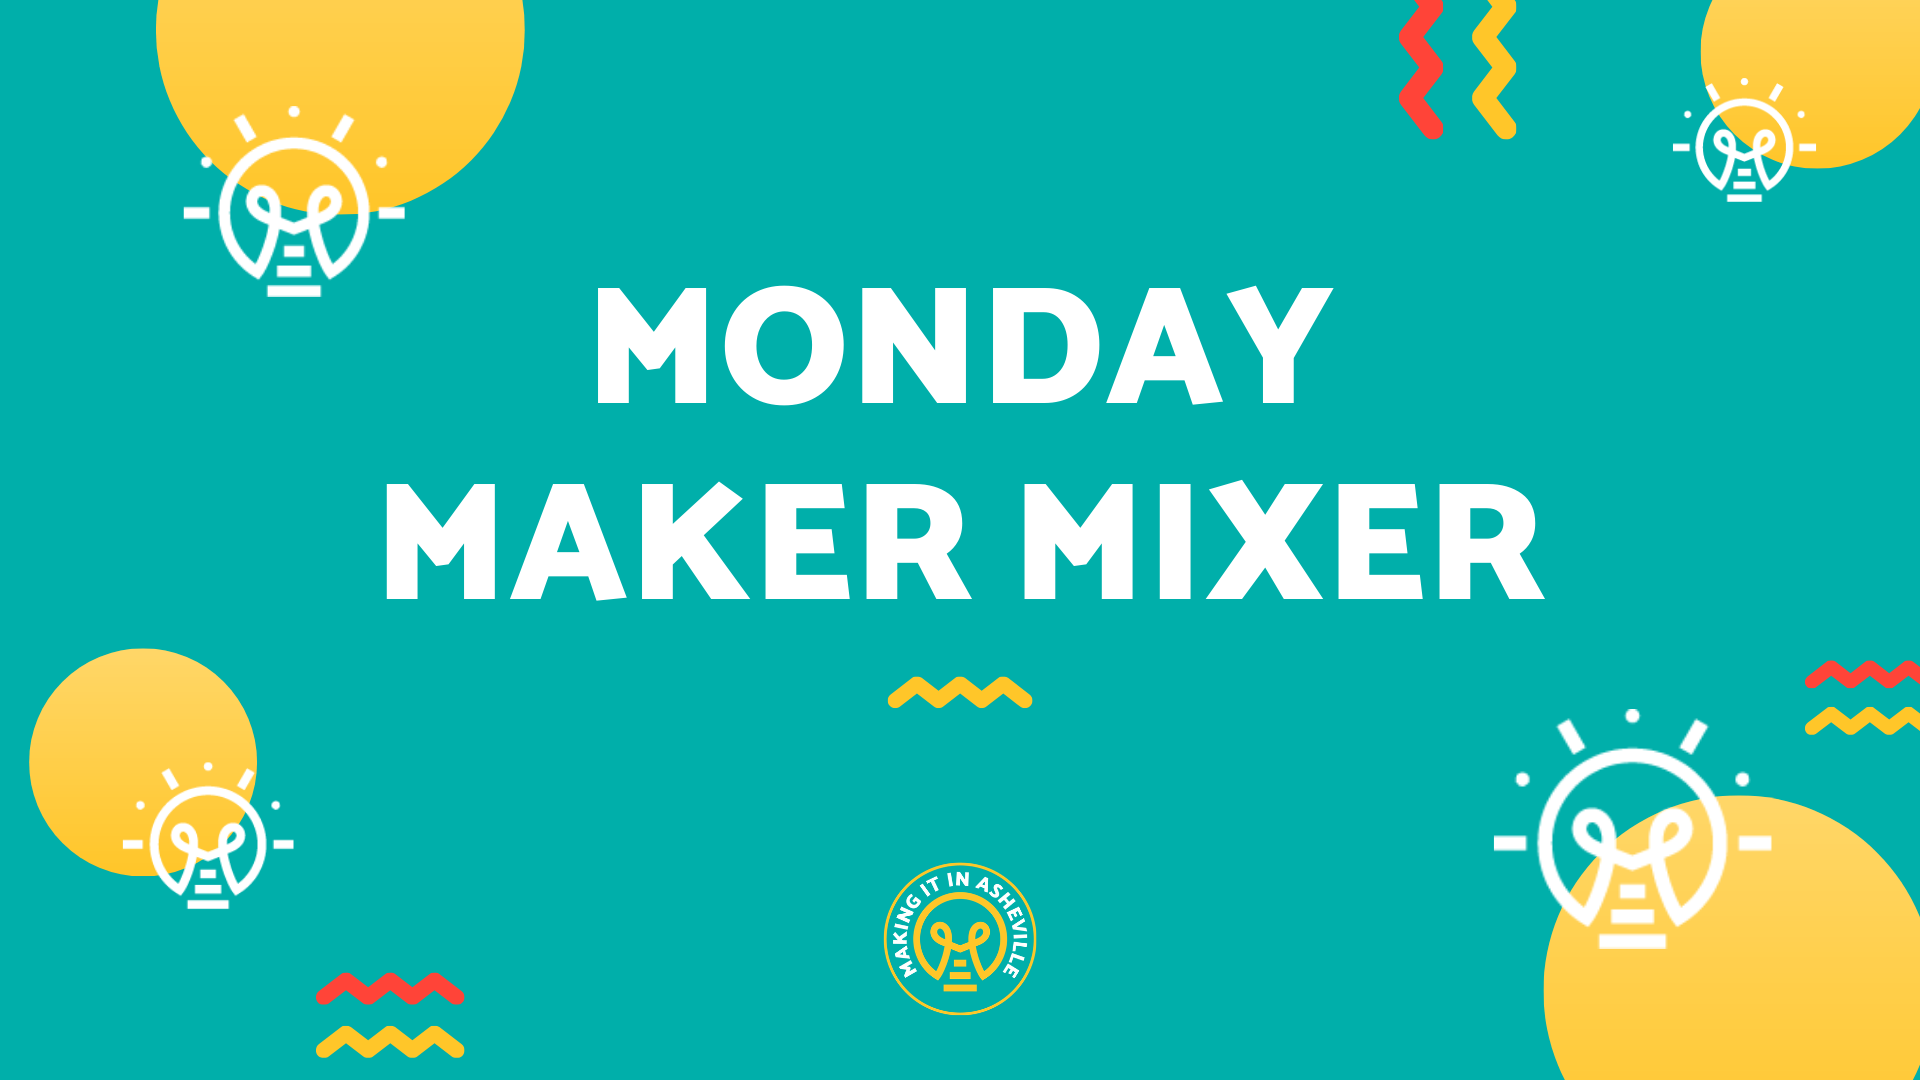 Monday Maker Mixer - Making It in Asheville